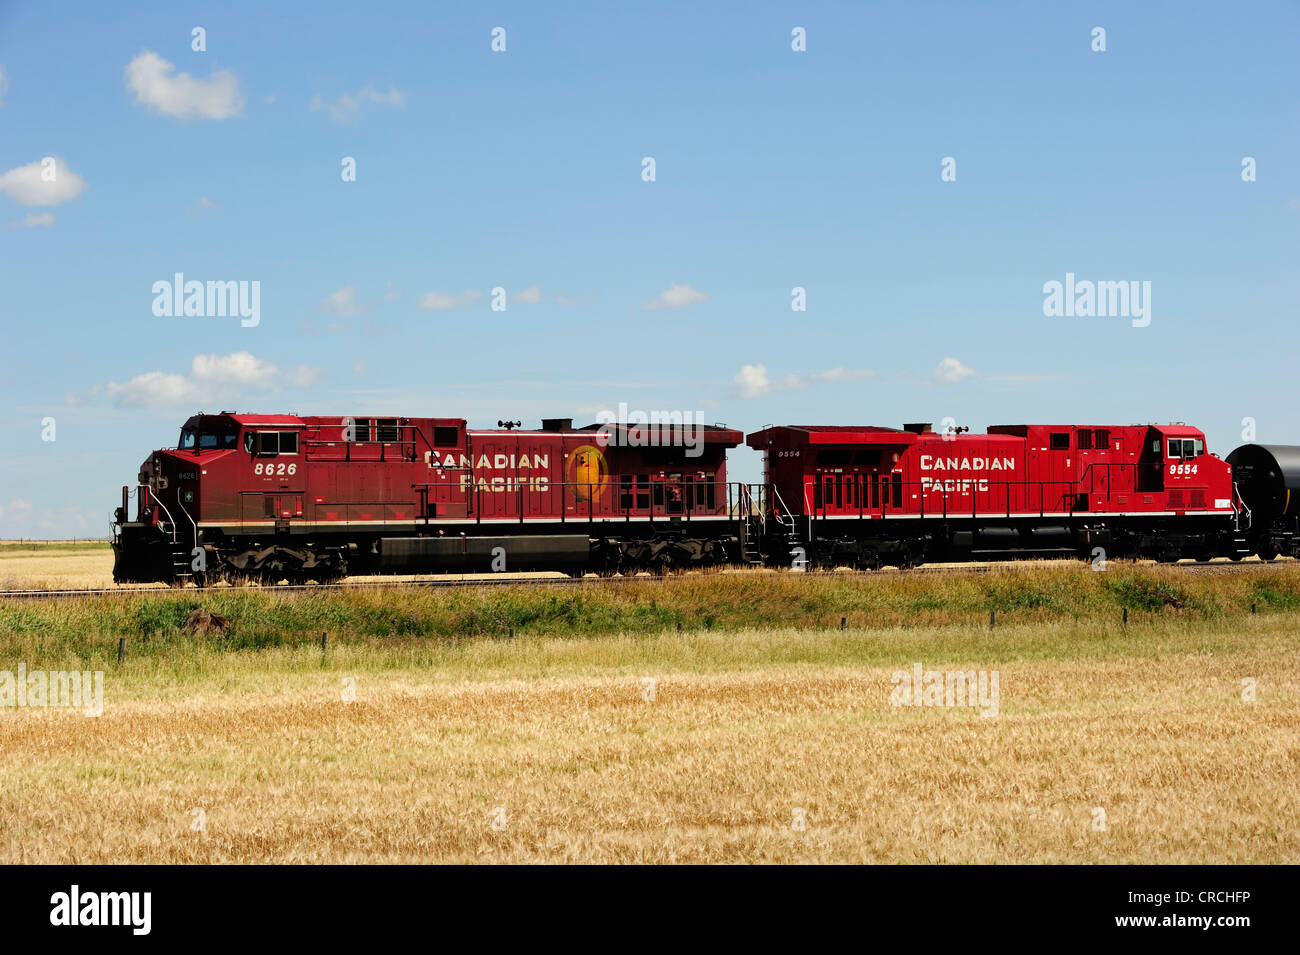 Two locomotives of the Canadian Pacific Railway in the prairie, Alberta, Canada - Stock Image